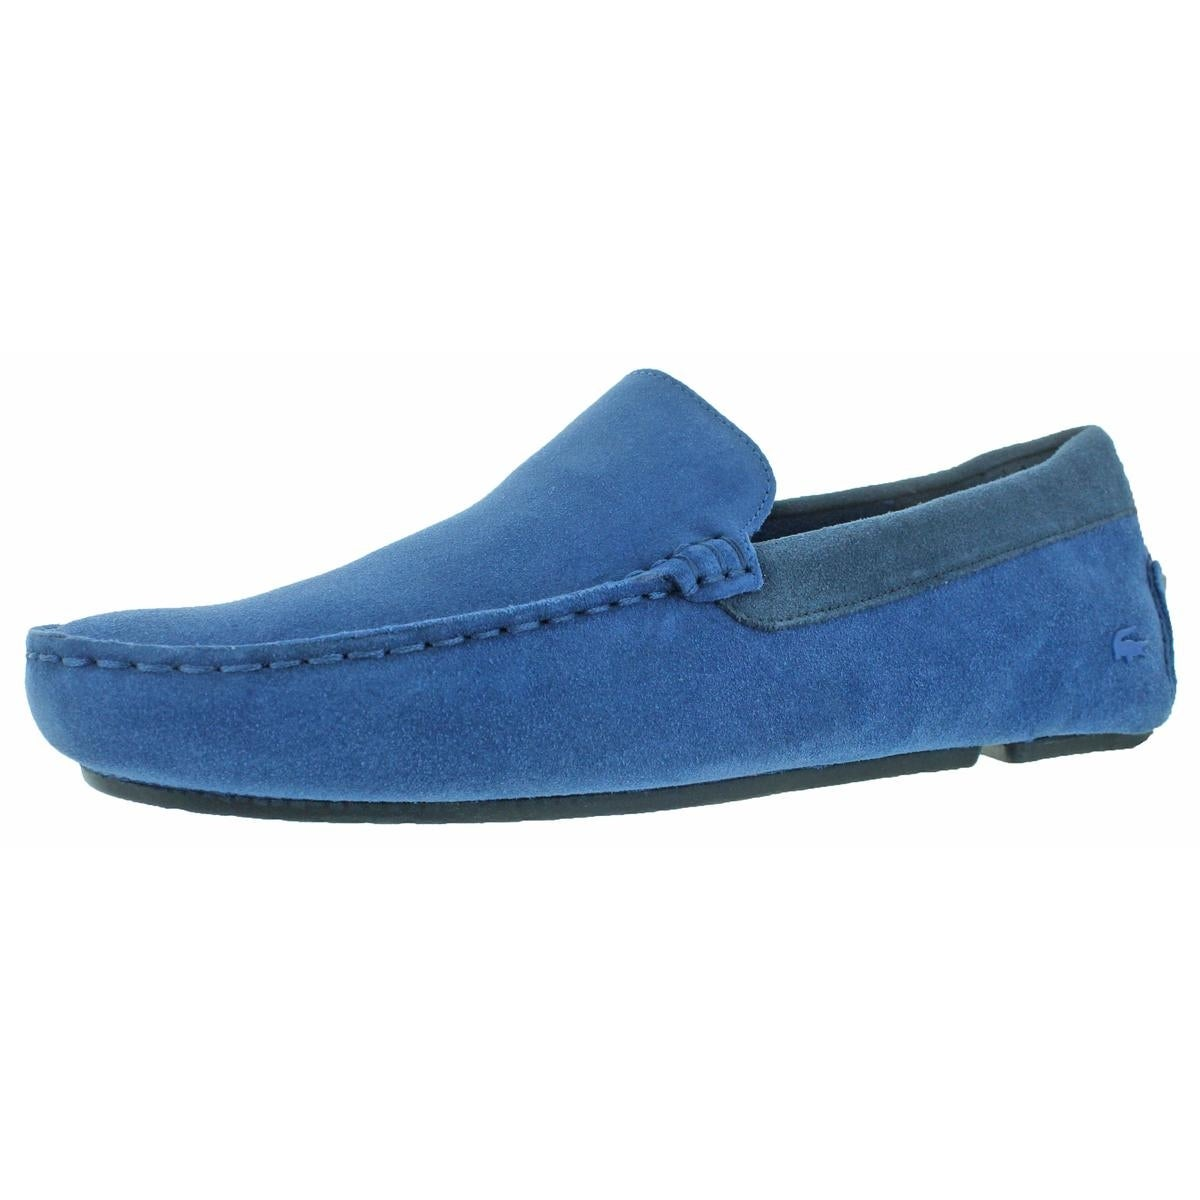 0745c76e4f63 Shop Lacoste Mens Piloter Driving Moccasins Suede Loafer - Ships To Canada  - Overstock - 24020191